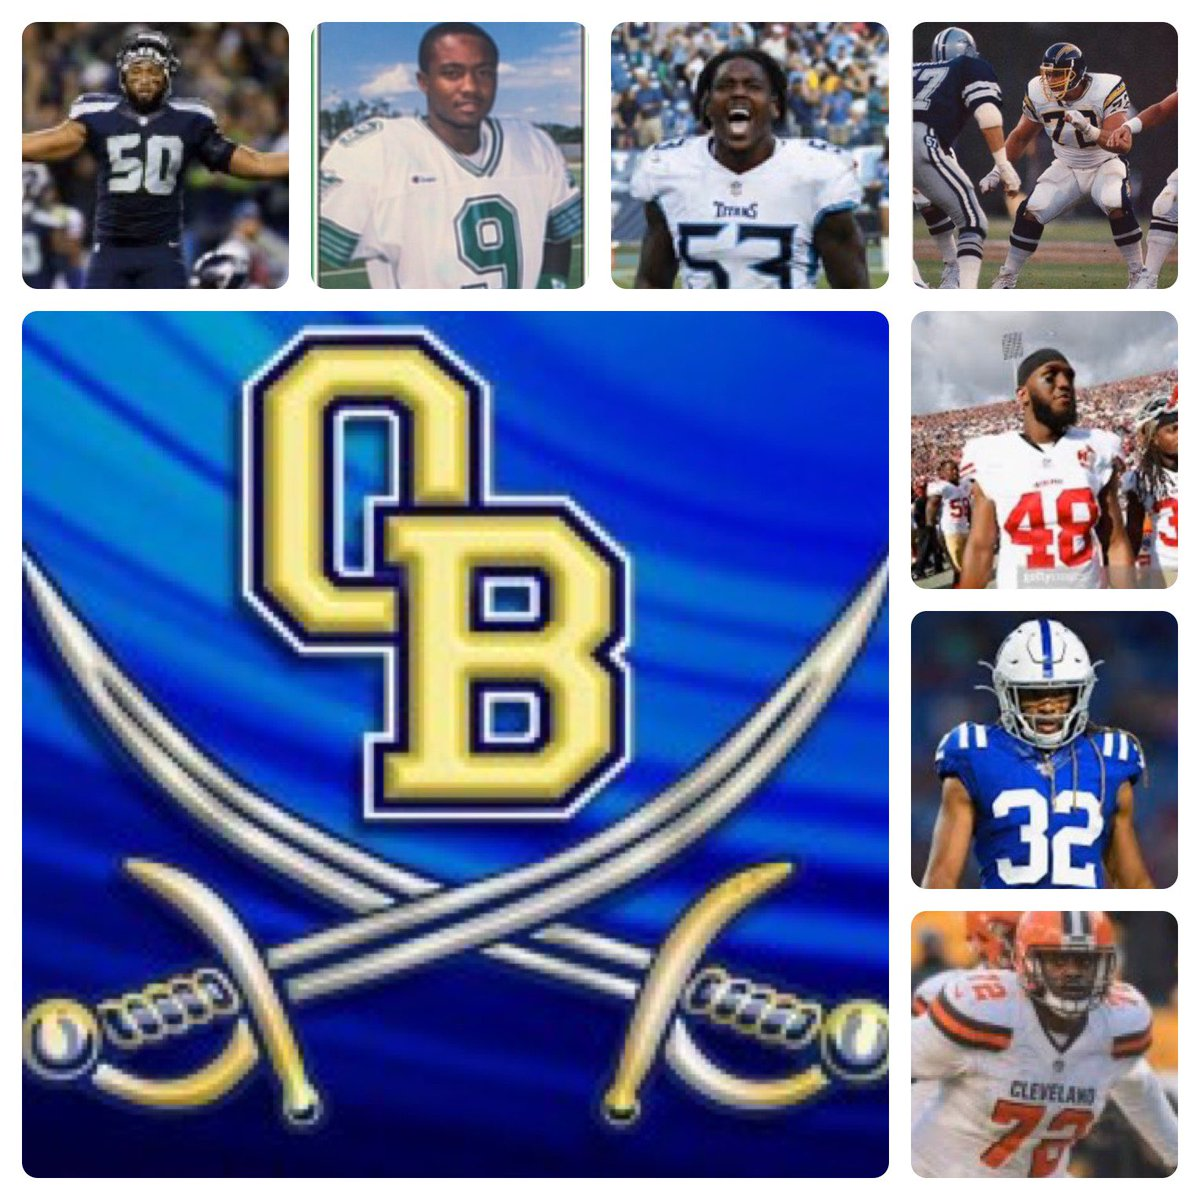 It came to my attention that there are people that are down talking OB  & trying to get our kids to leave I would like to remind everyone this is #OBPride These guys did ok with some OB coaches. Not to mention the countless players who are on NCAA teams right now! #OBPRIDE4LIFE<br>http://pic.twitter.com/bogBWVIDbC